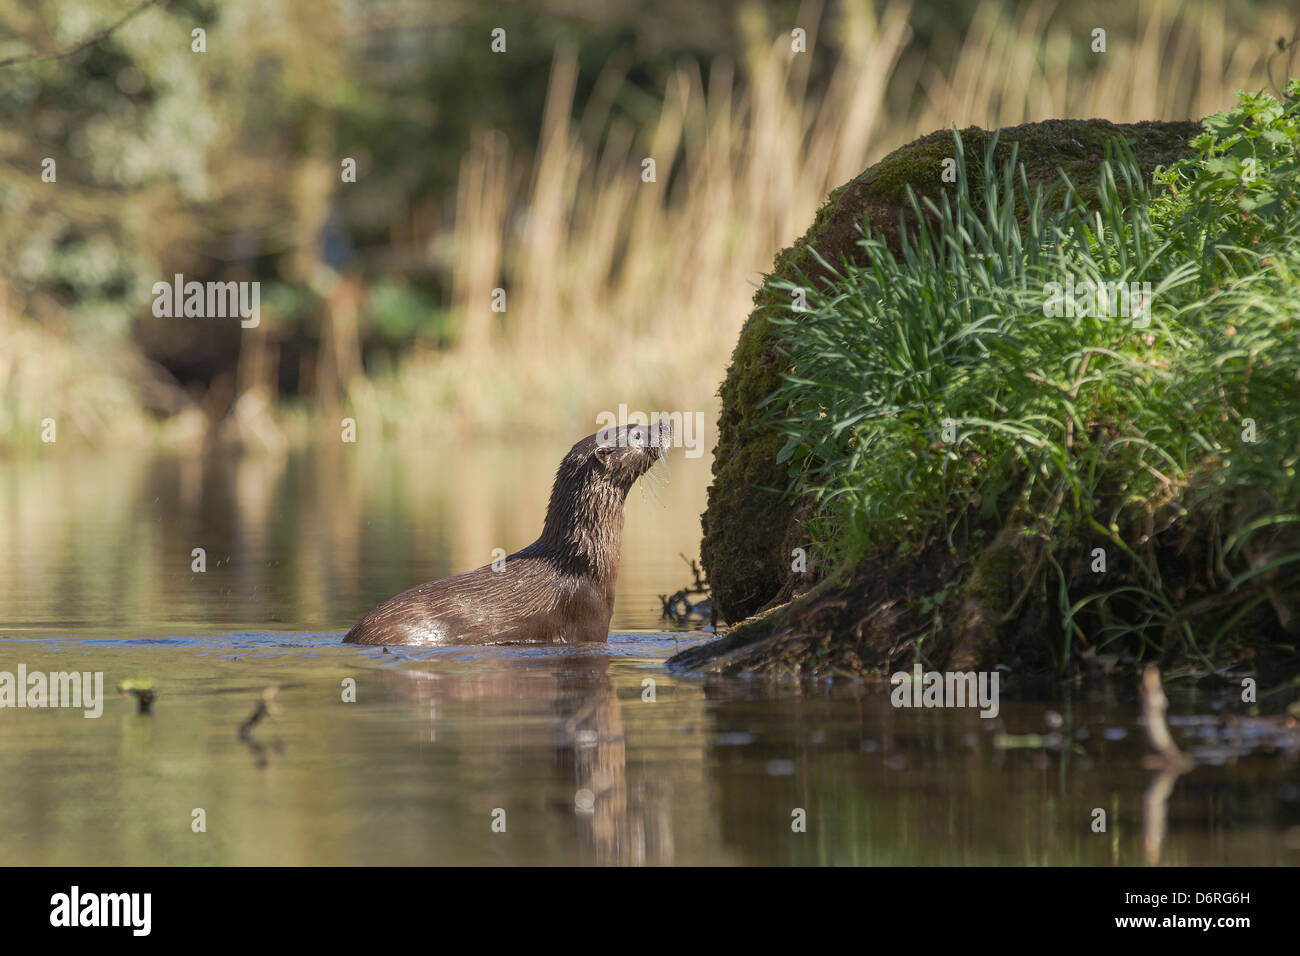 Otter (Lutra lutra) sniffing the riverbank - Stock Image